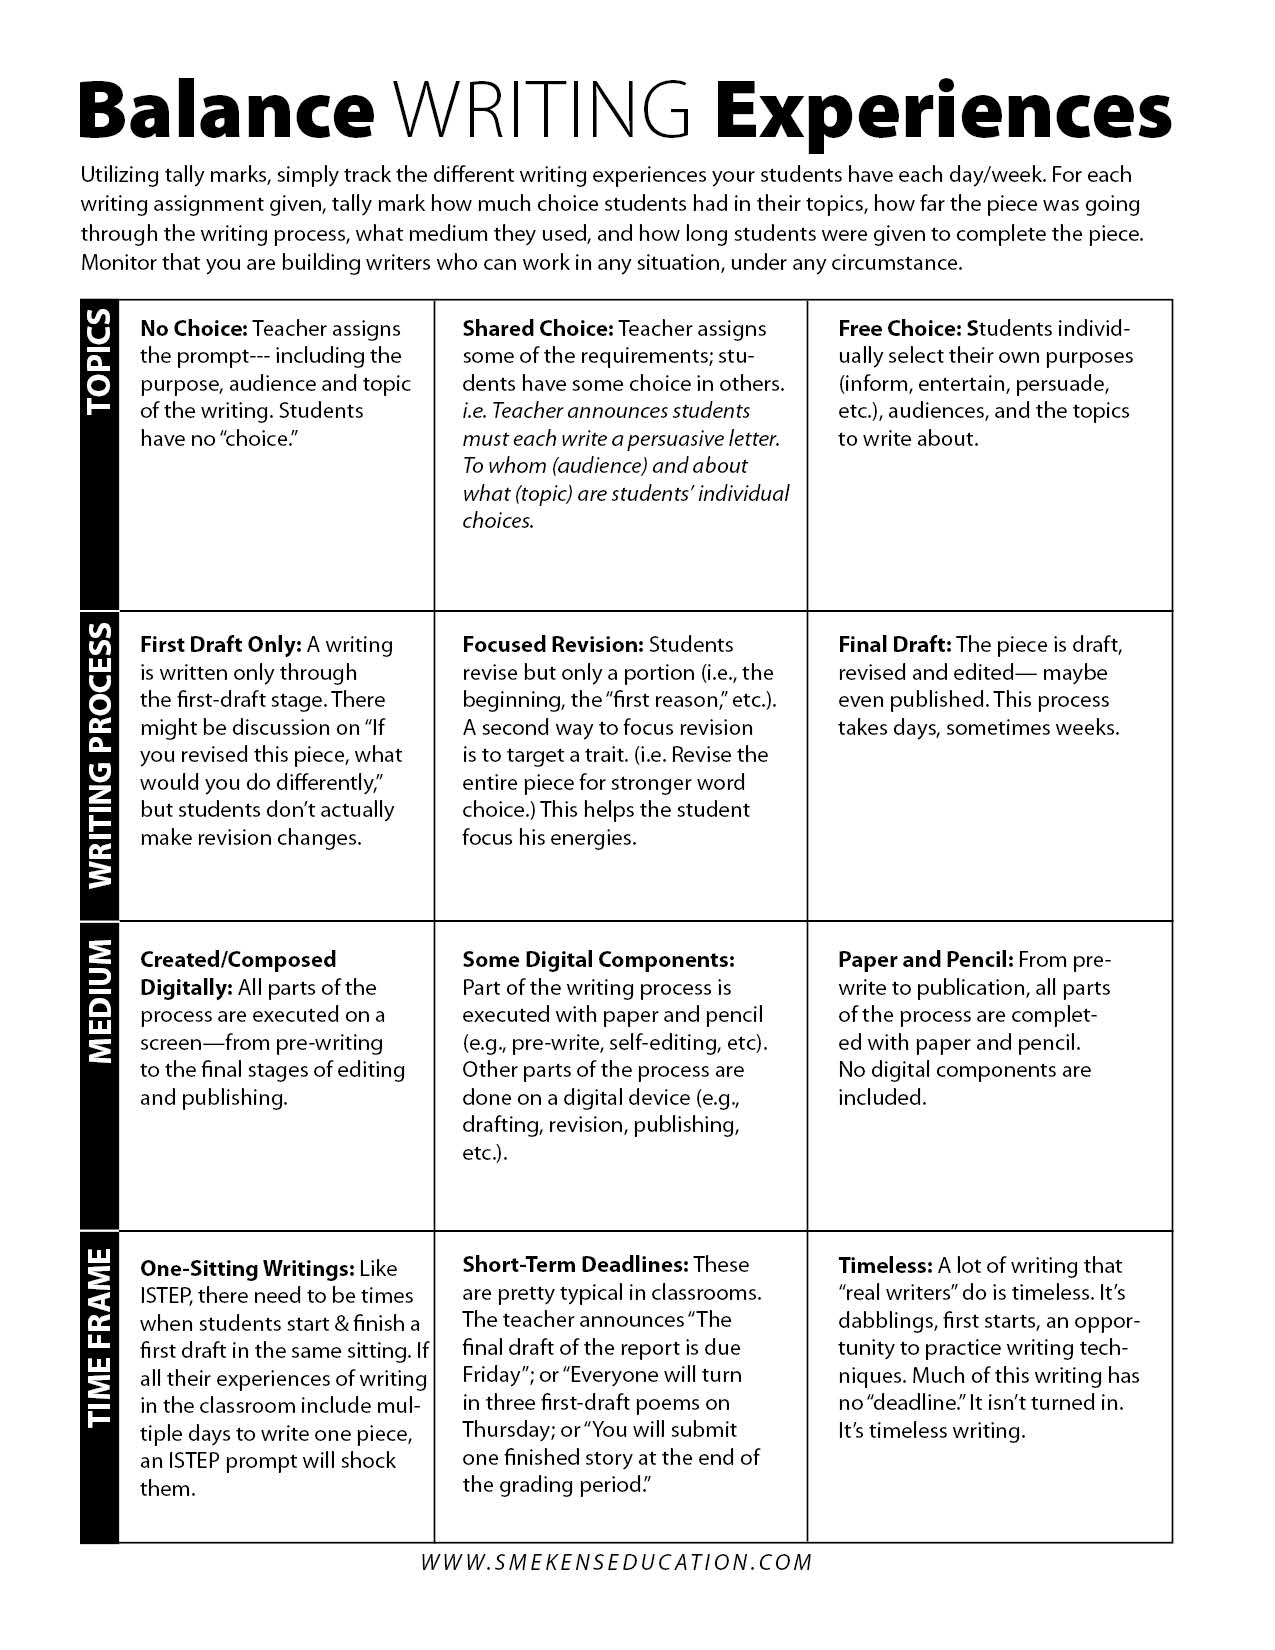 Tracking Student Writing Experiences - Form Explanation